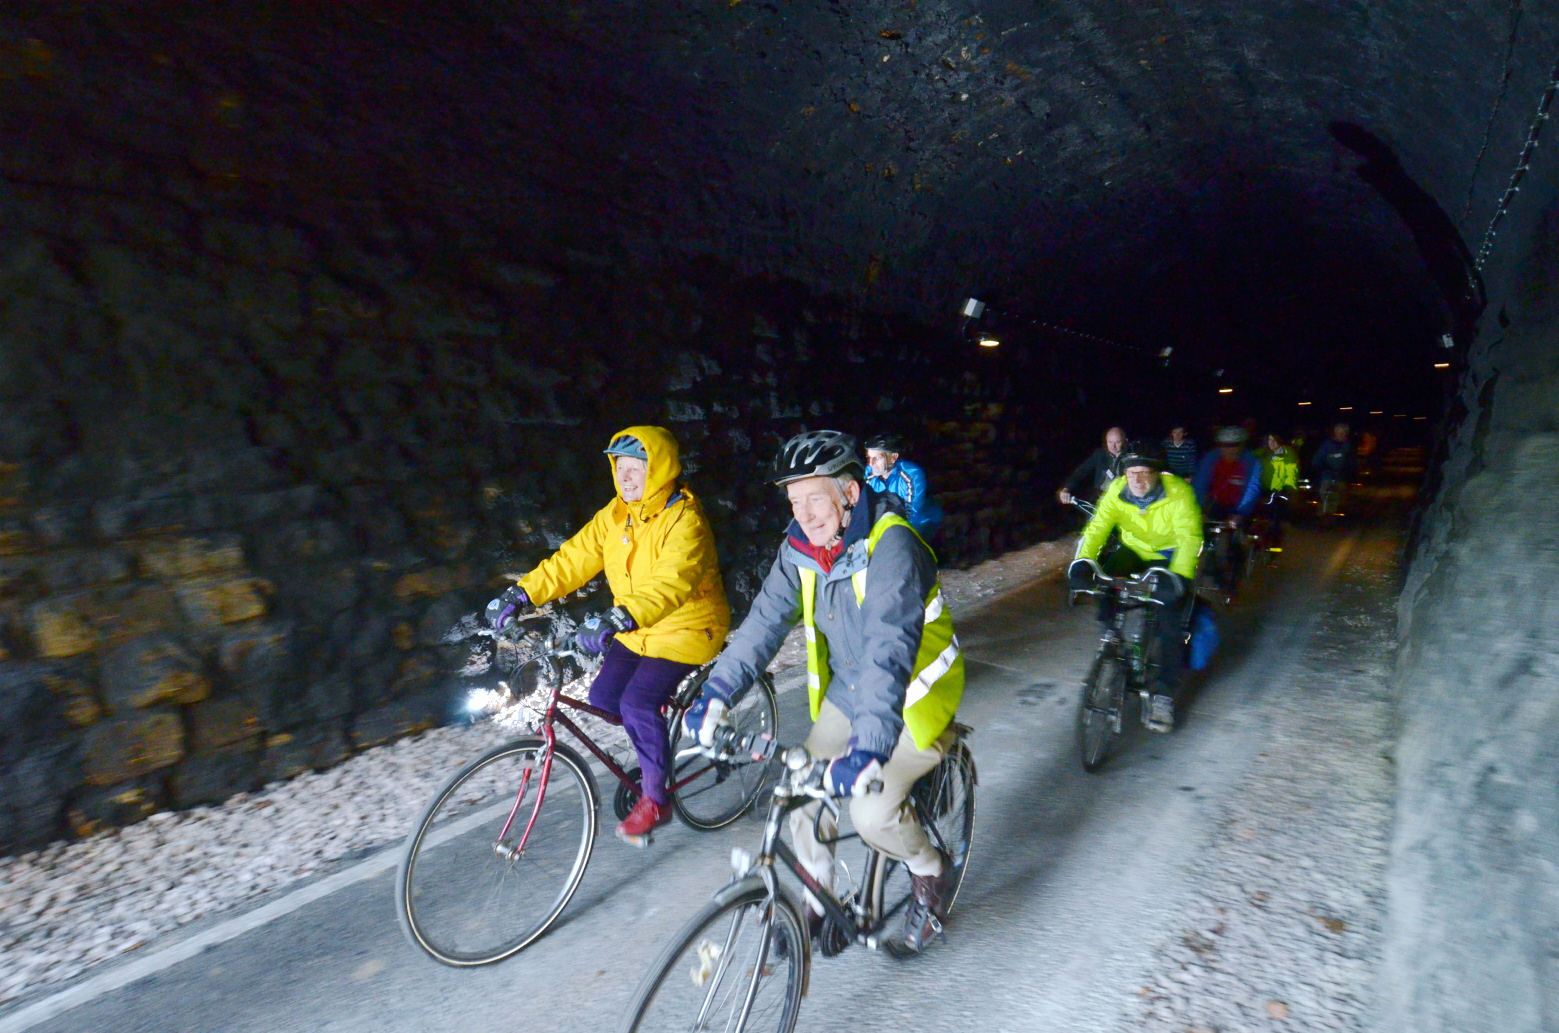 Cullingworth to Queensbury ycle tunnel 'would be the longest in Europe'